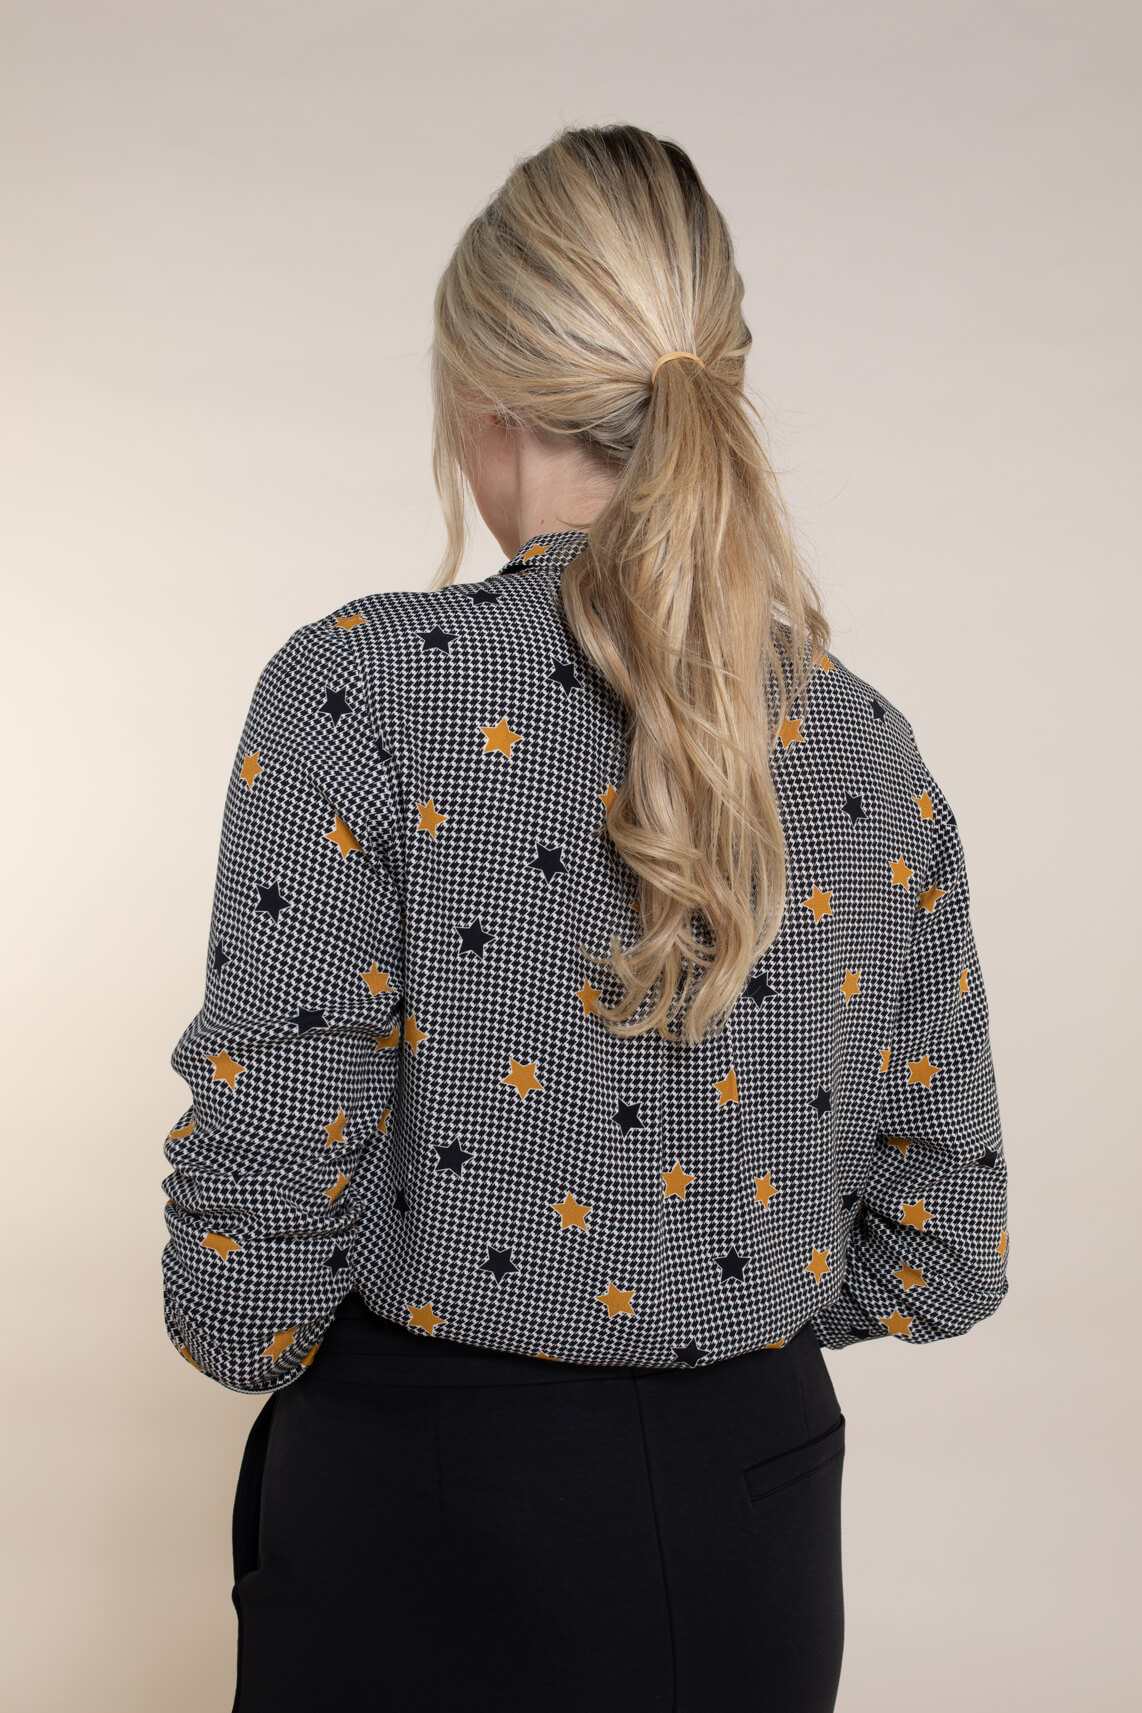 Anna Blue Dames Blouse met sterrenprint zwart